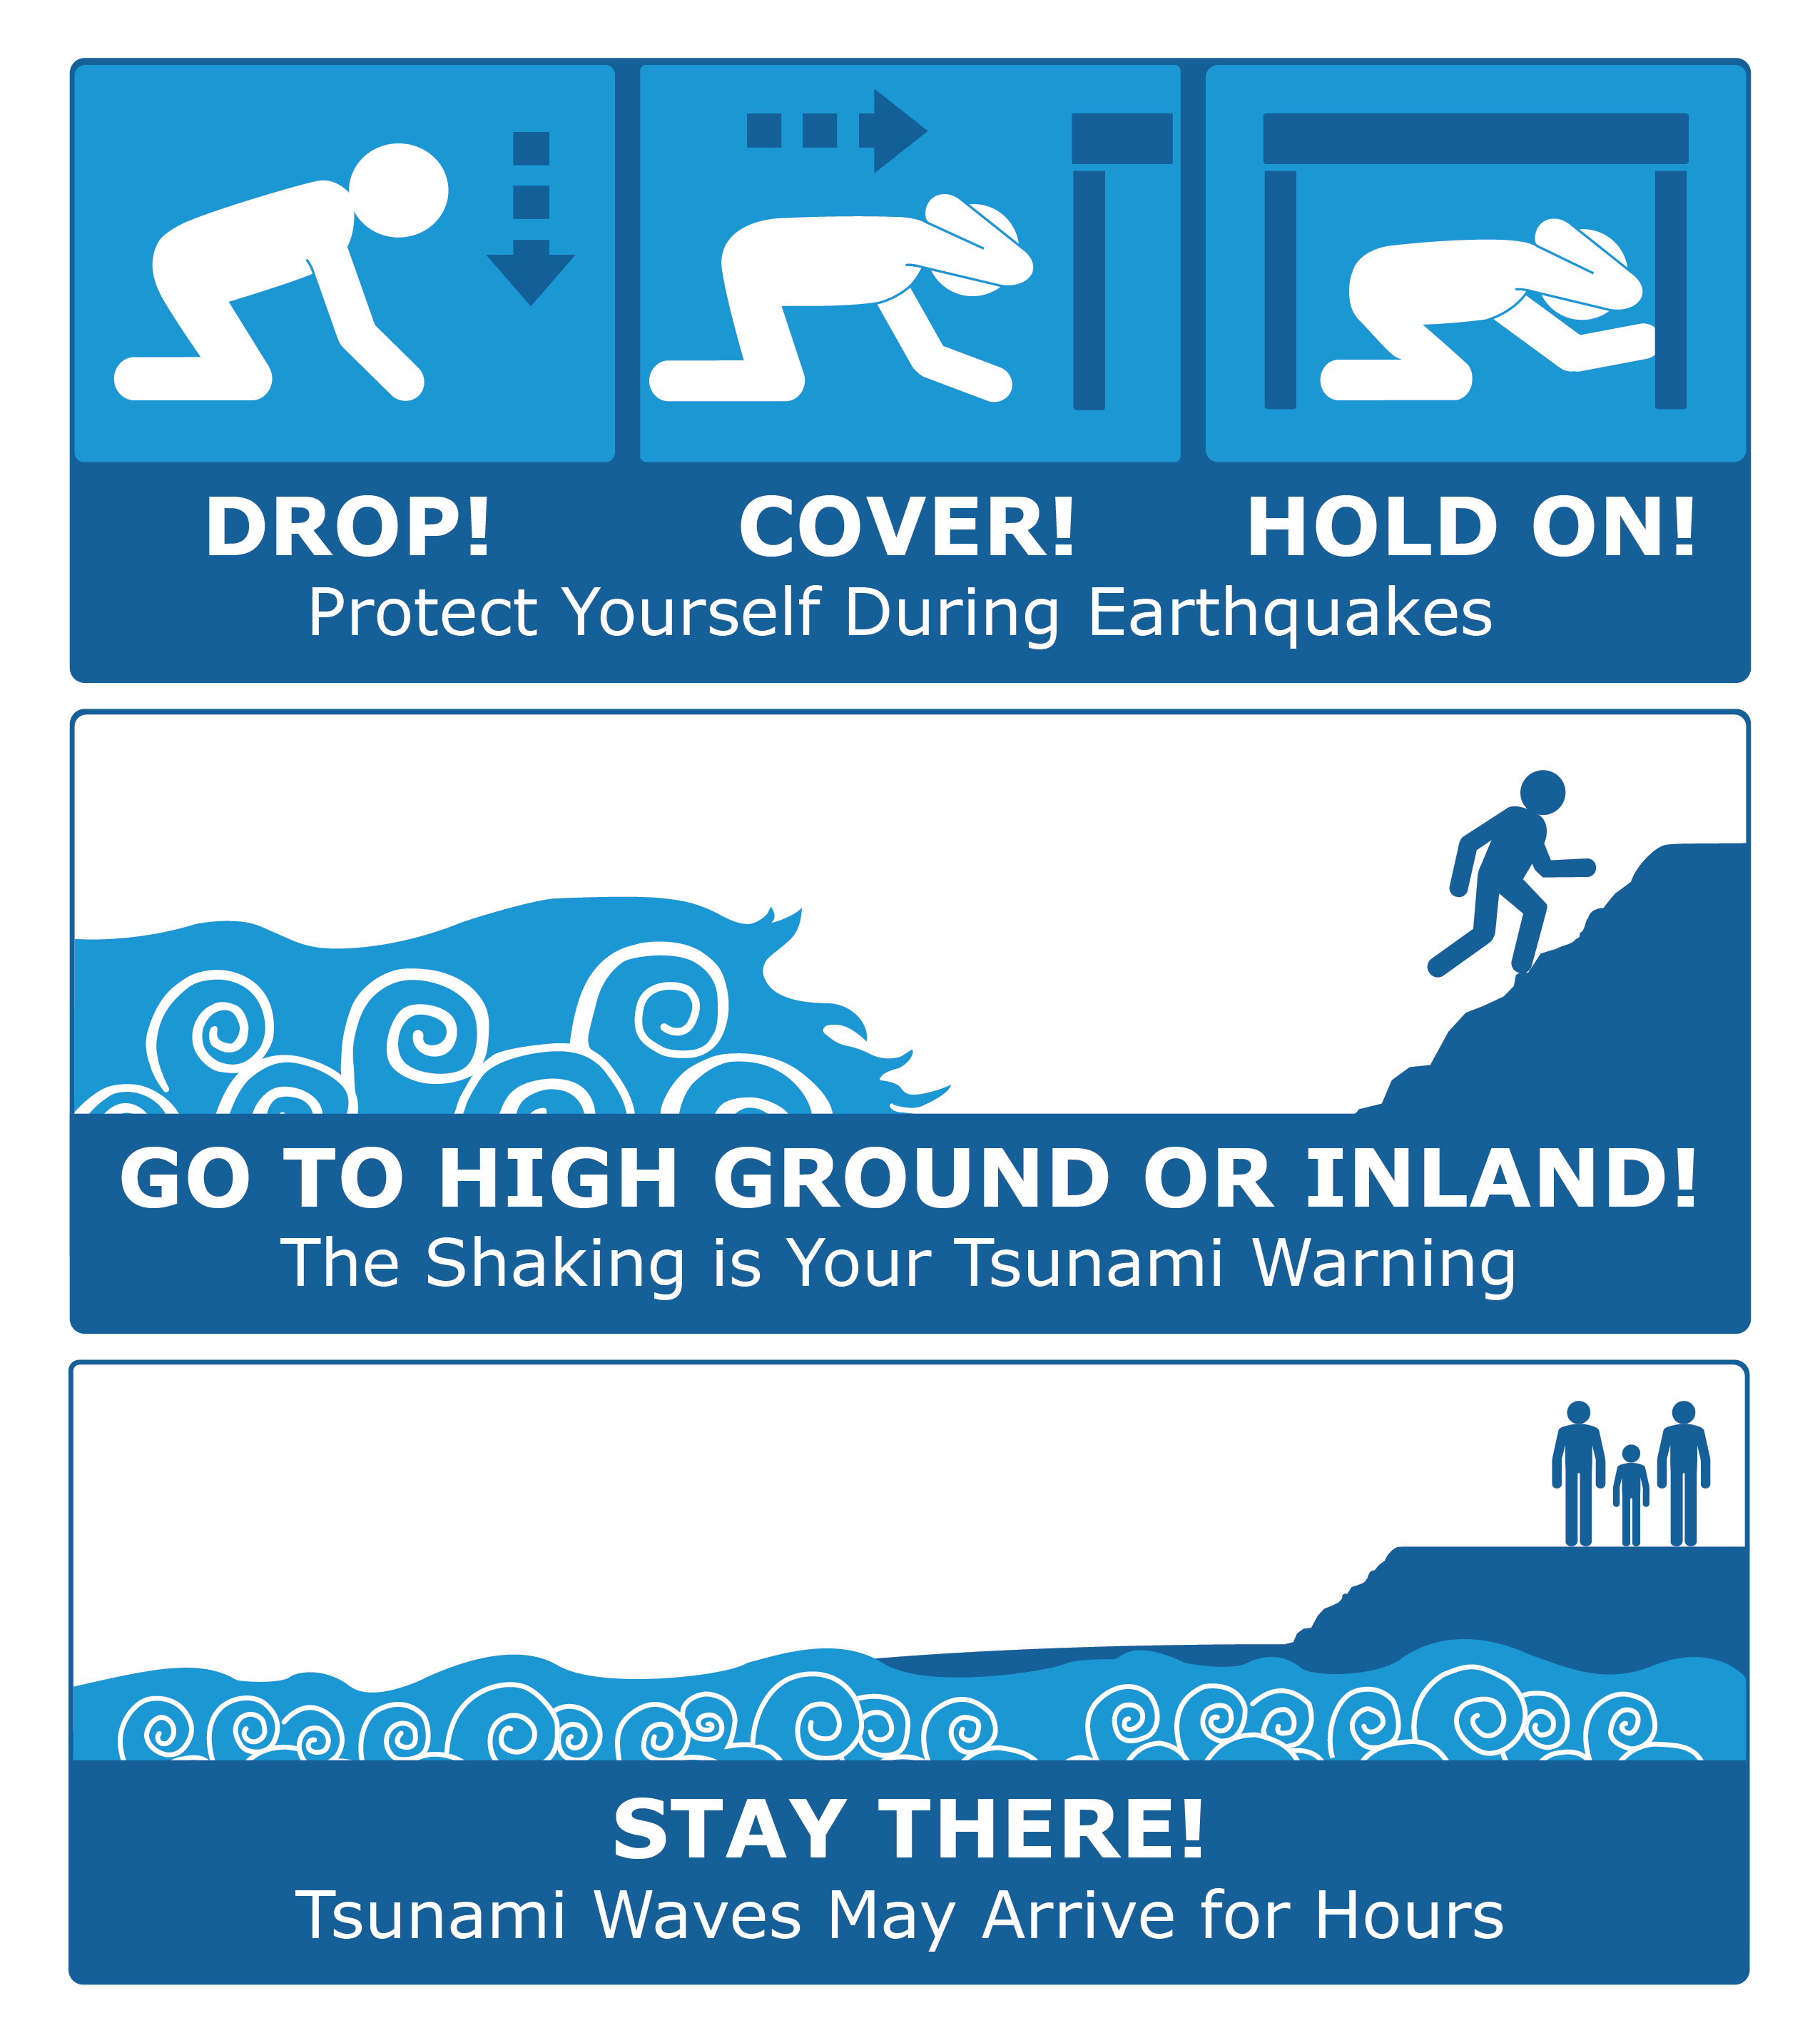 Graphic with instructions to Drop, Cover, and Hold on during earthquakes, then Get to High Ground when a tsunami is imminent, and then to Stay There as tsunami waves may arrive for hours